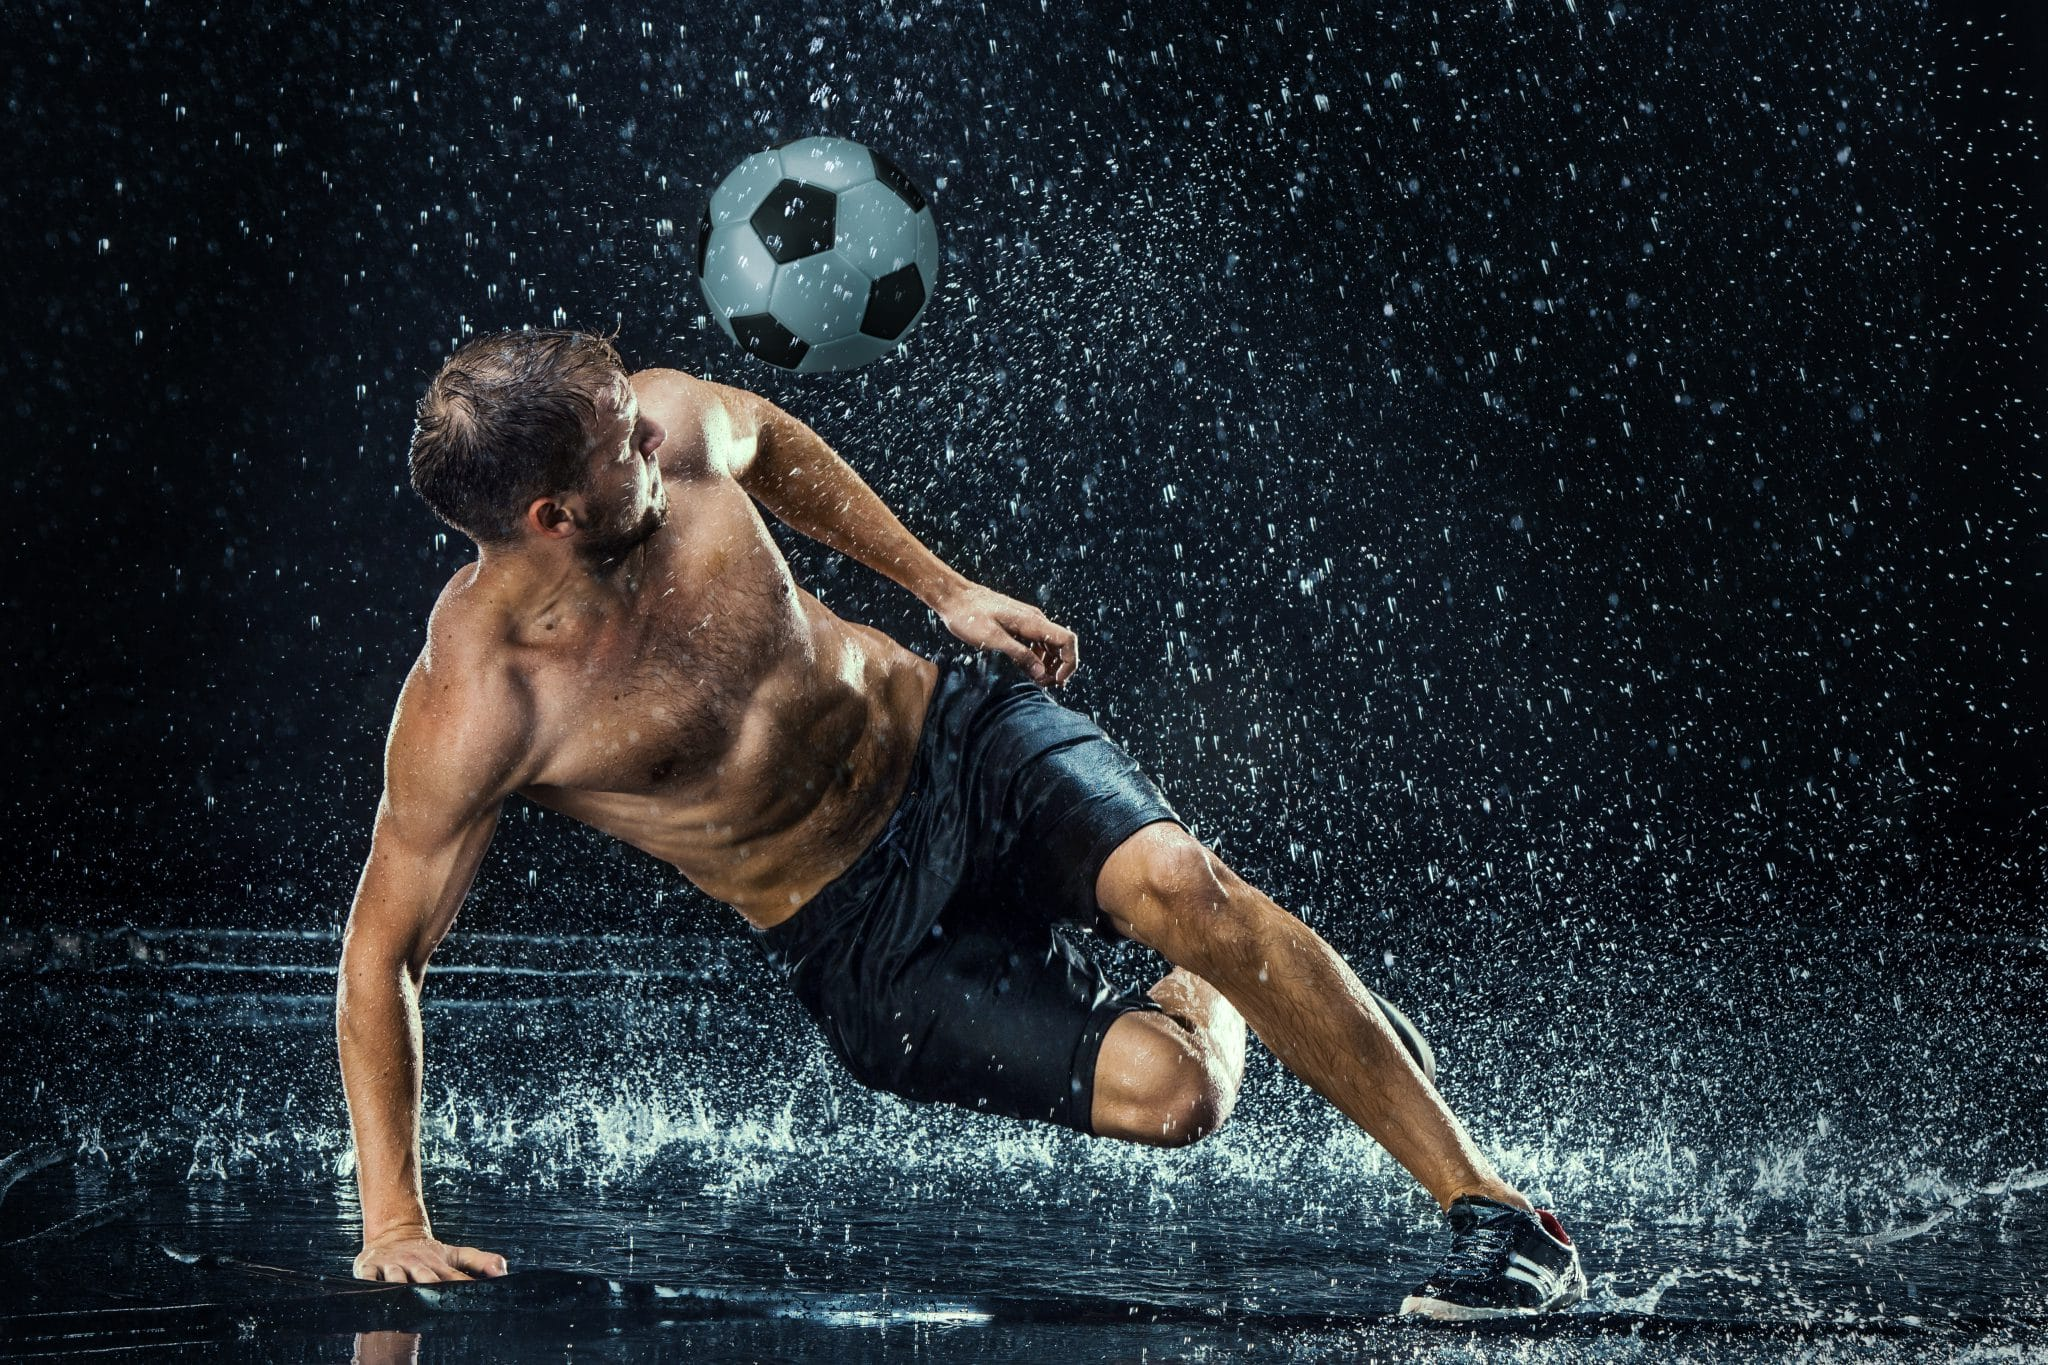 water-drops-around-football-player-PR2CT6K